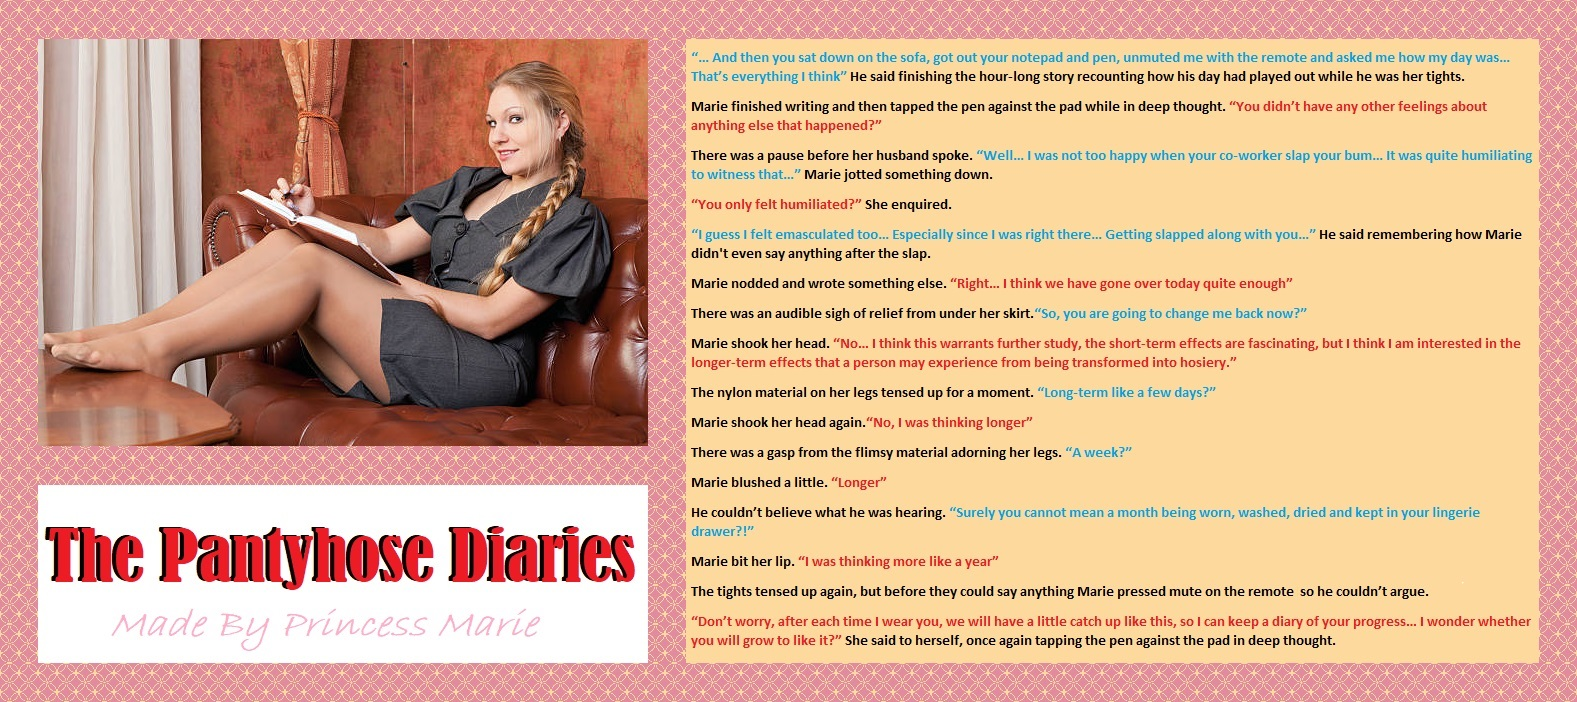 The Pantyhose Diaries